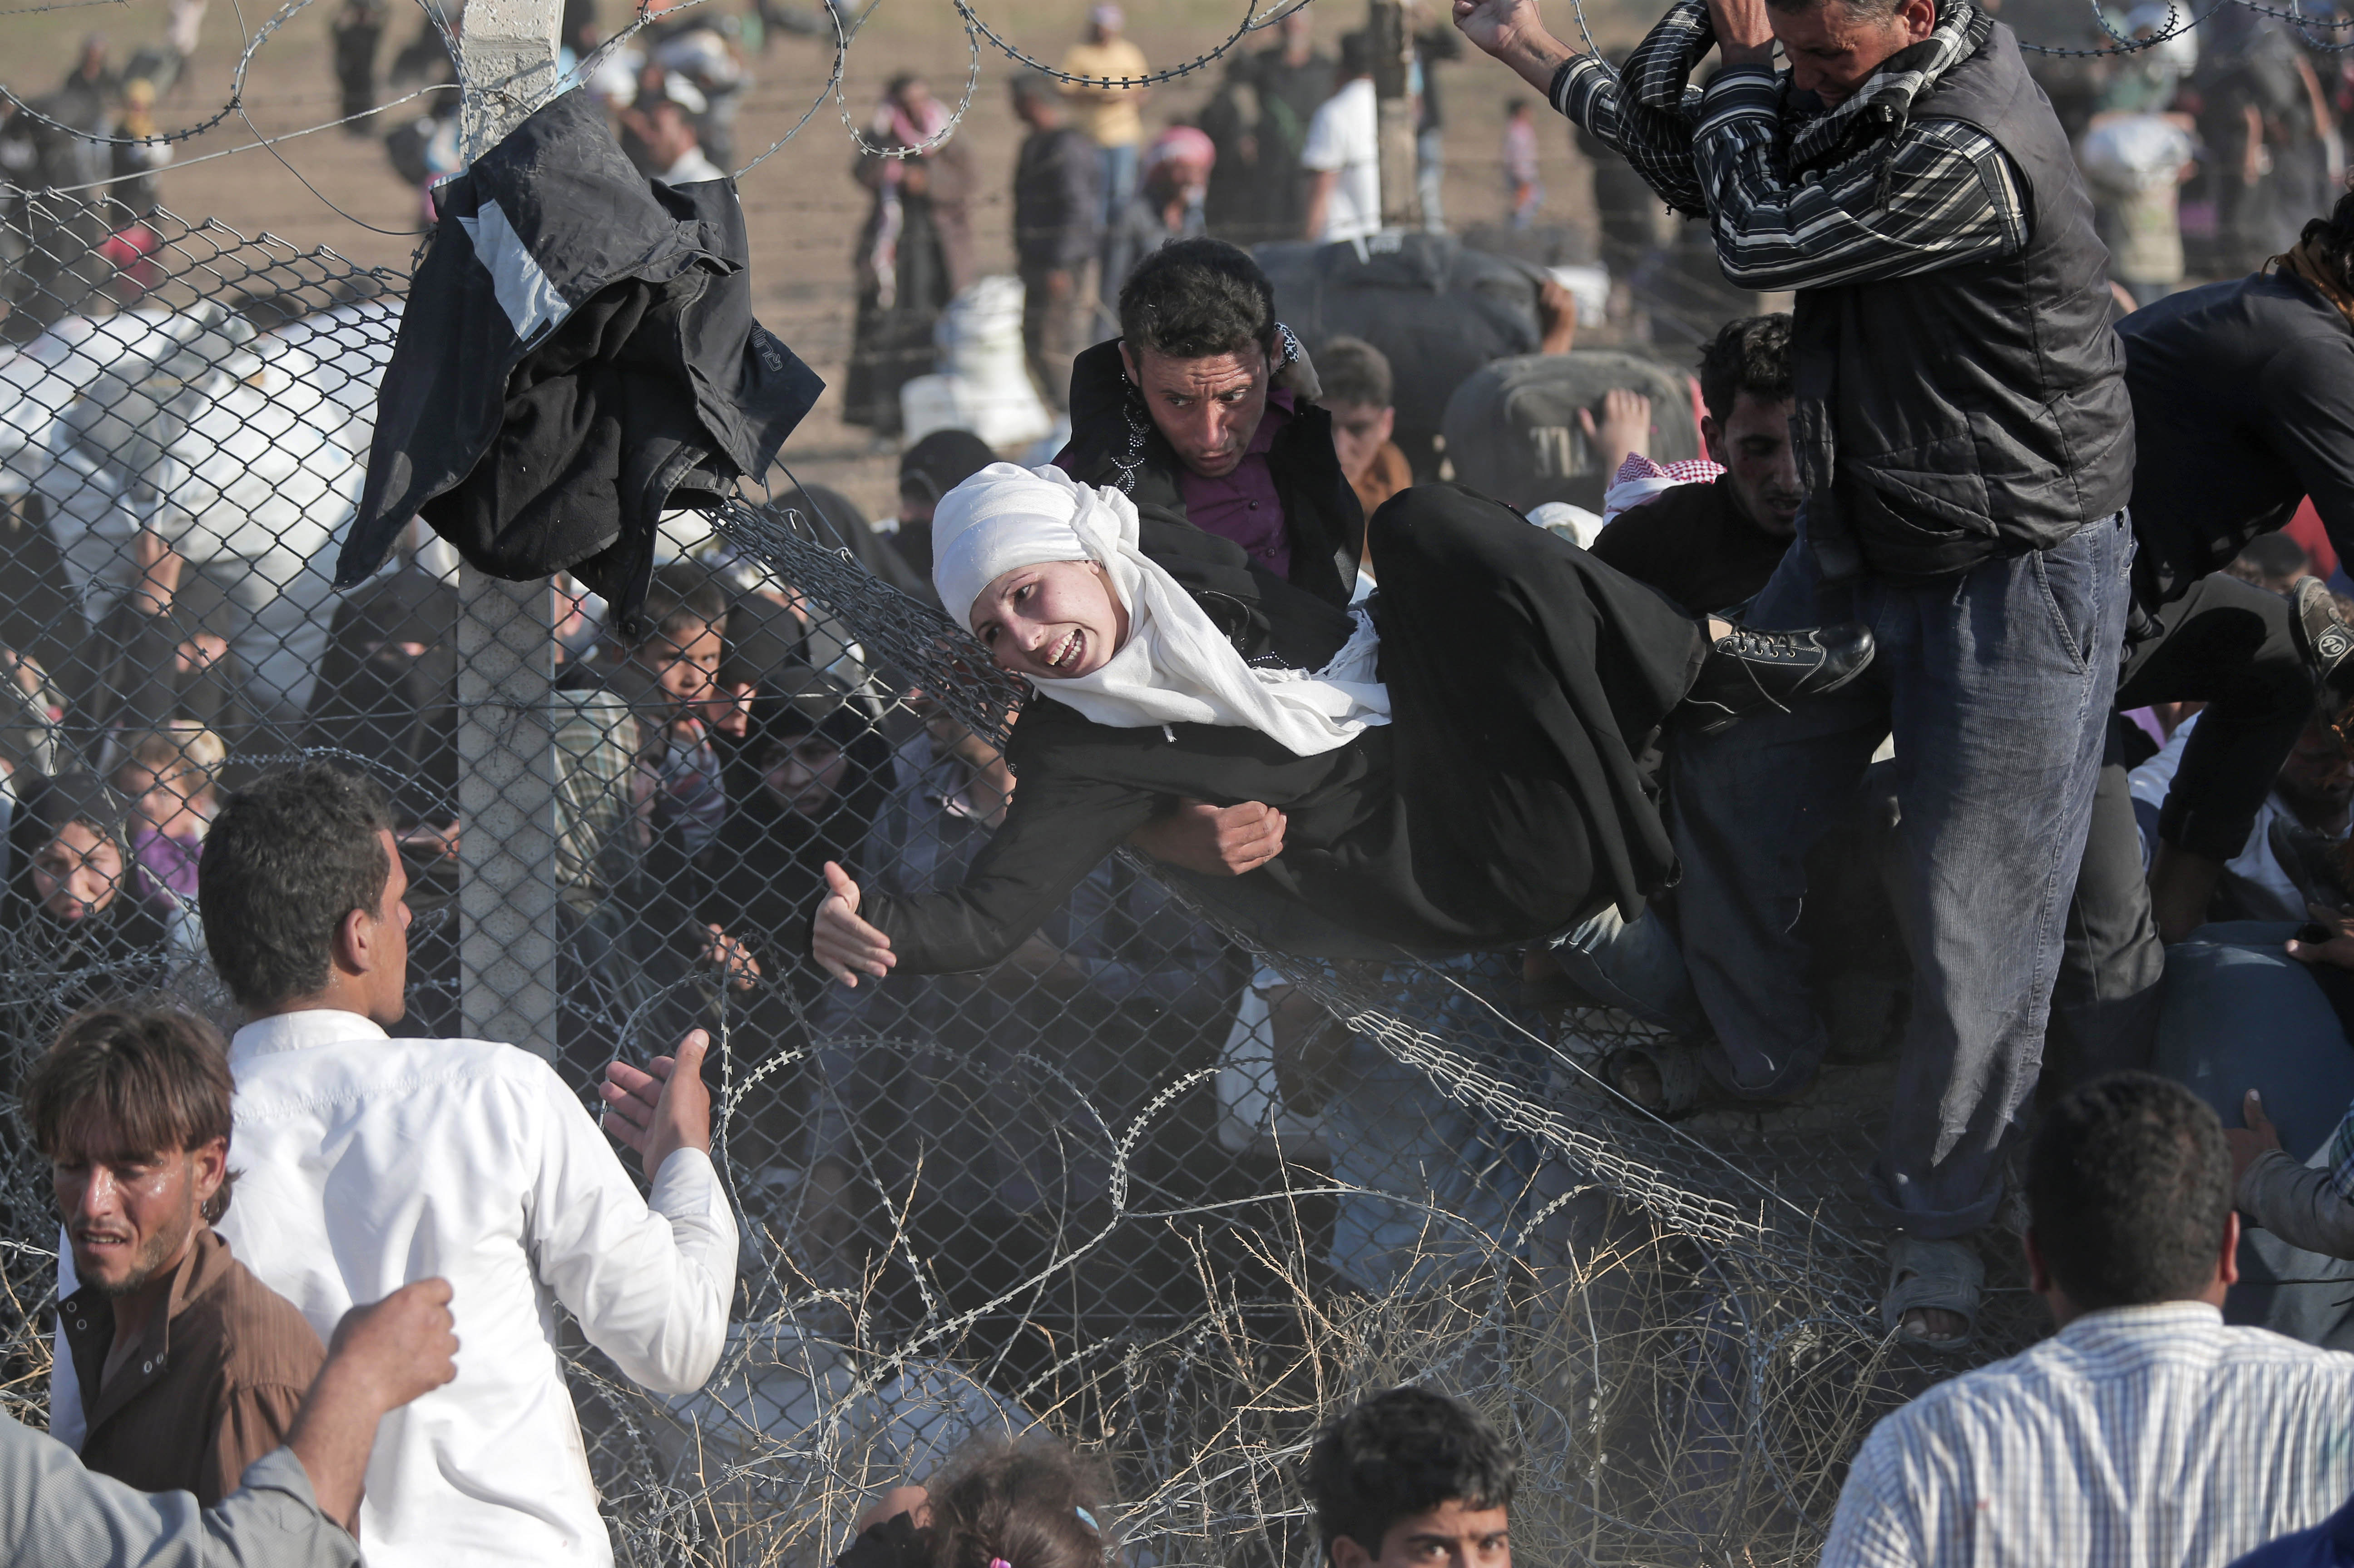 FILE - In this Sunday, June 14, 2015 file photo, Syrian refugees are helped into Turkey after breaking the border fence and crossing from Syria in Akcakale, Sanliurfa province, southeastern Turkey